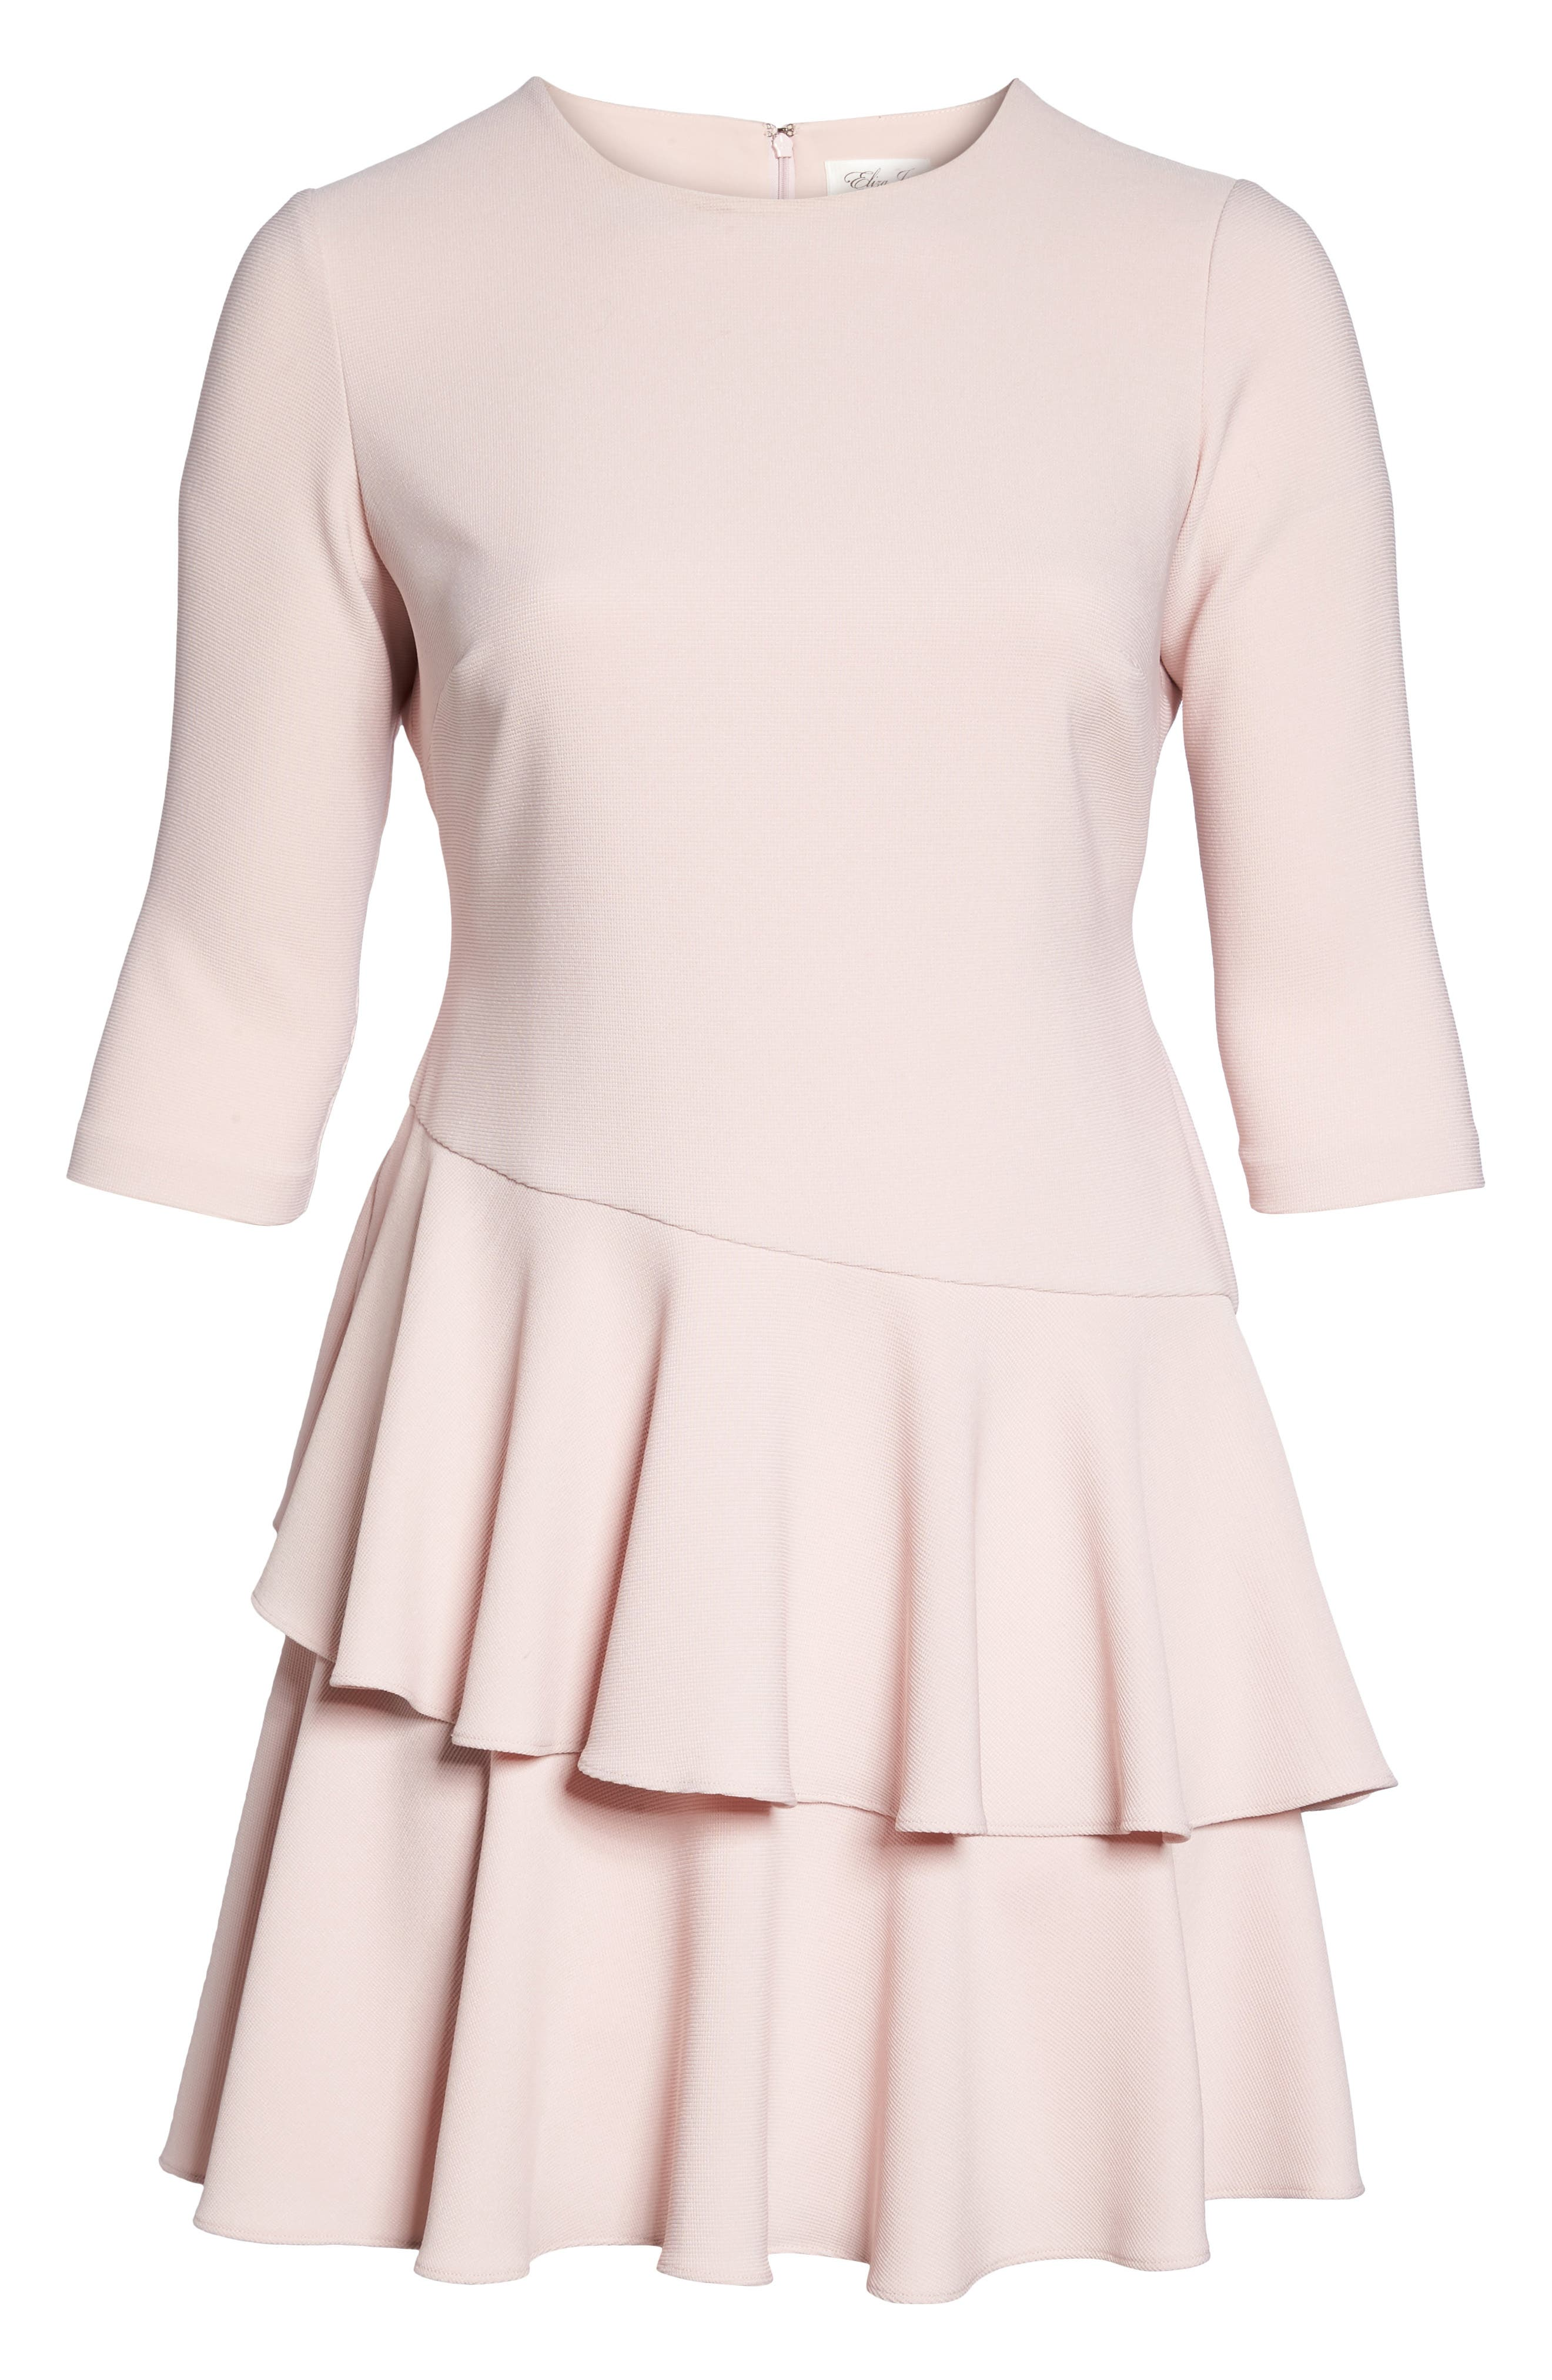 Tiered Ruffle A-Line Dress,                             Alternate thumbnail 6, color,                             Blush